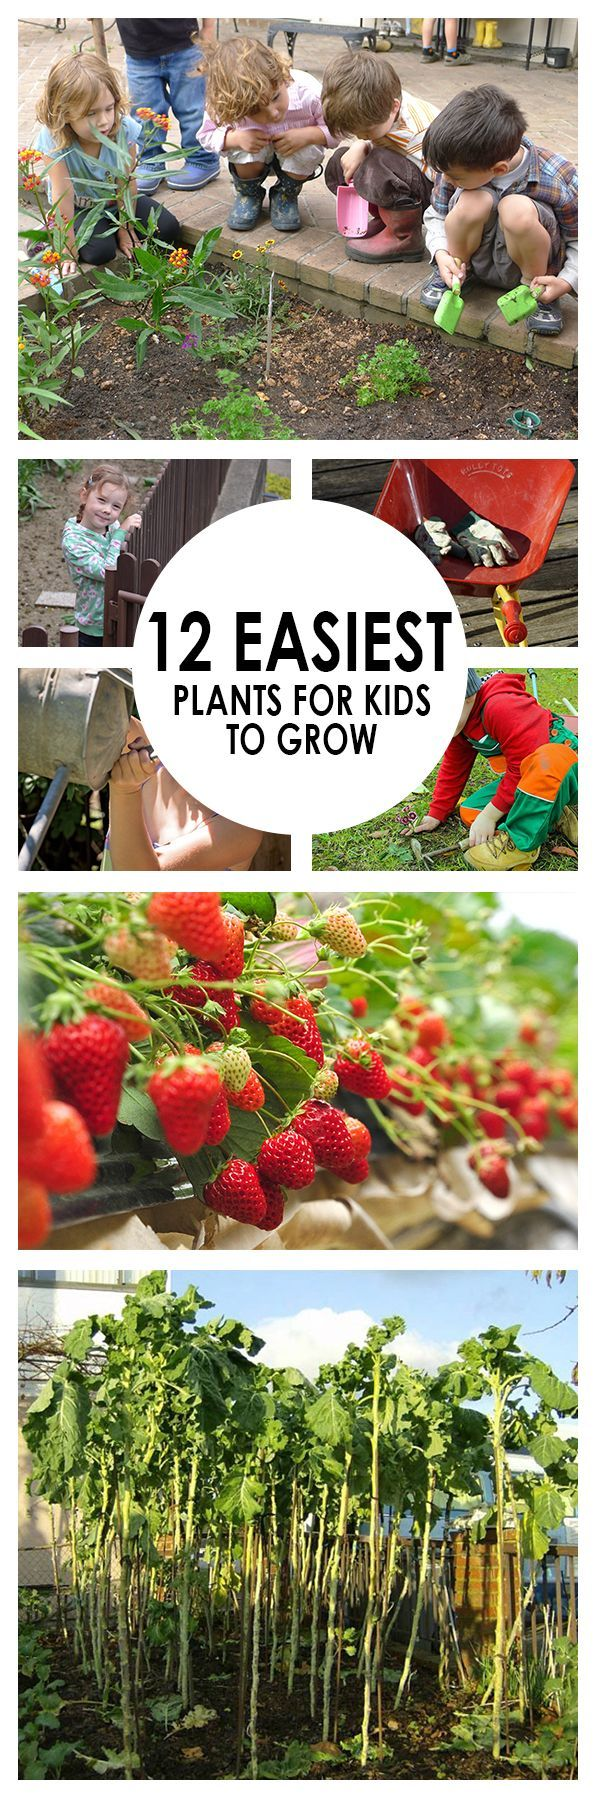 Plants, gardening, plants for kids, easy plants to grow, gardening, gardening hacks, gardening tips, popular pin, easy gardening.